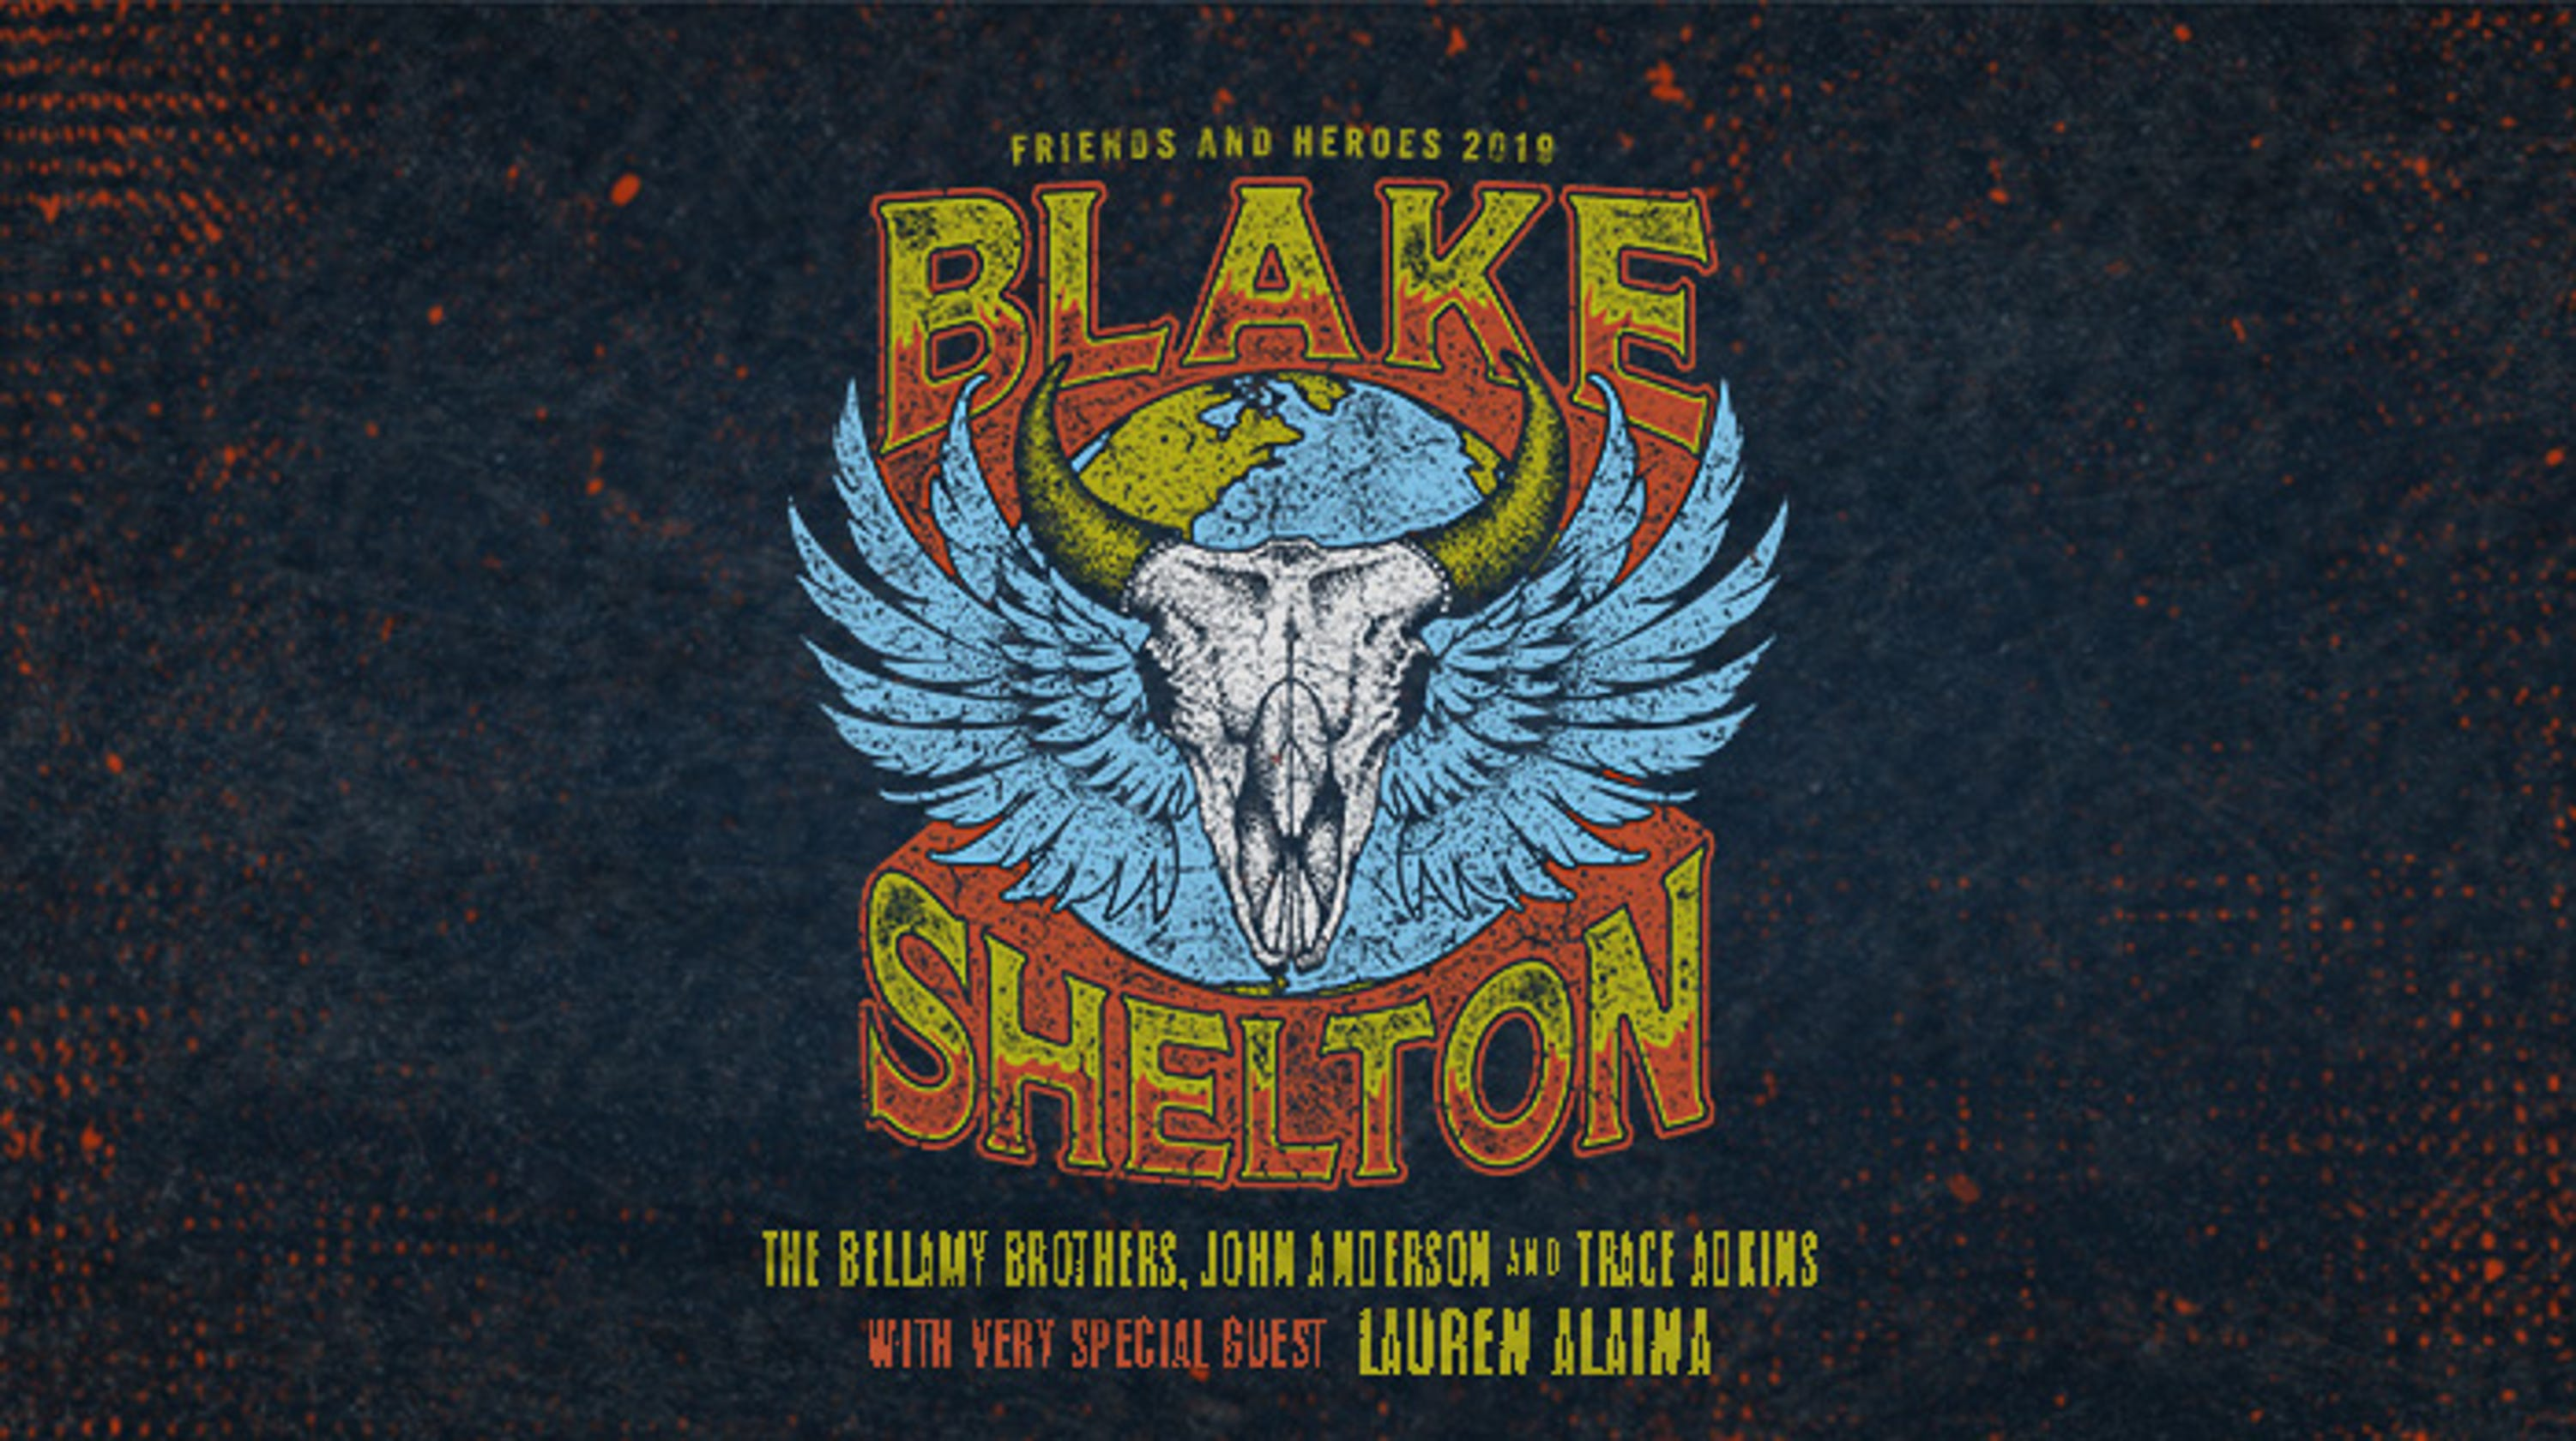 Des Moines Shopping >> Blake Shelton Friends and Heroes Tour Presale Tickets